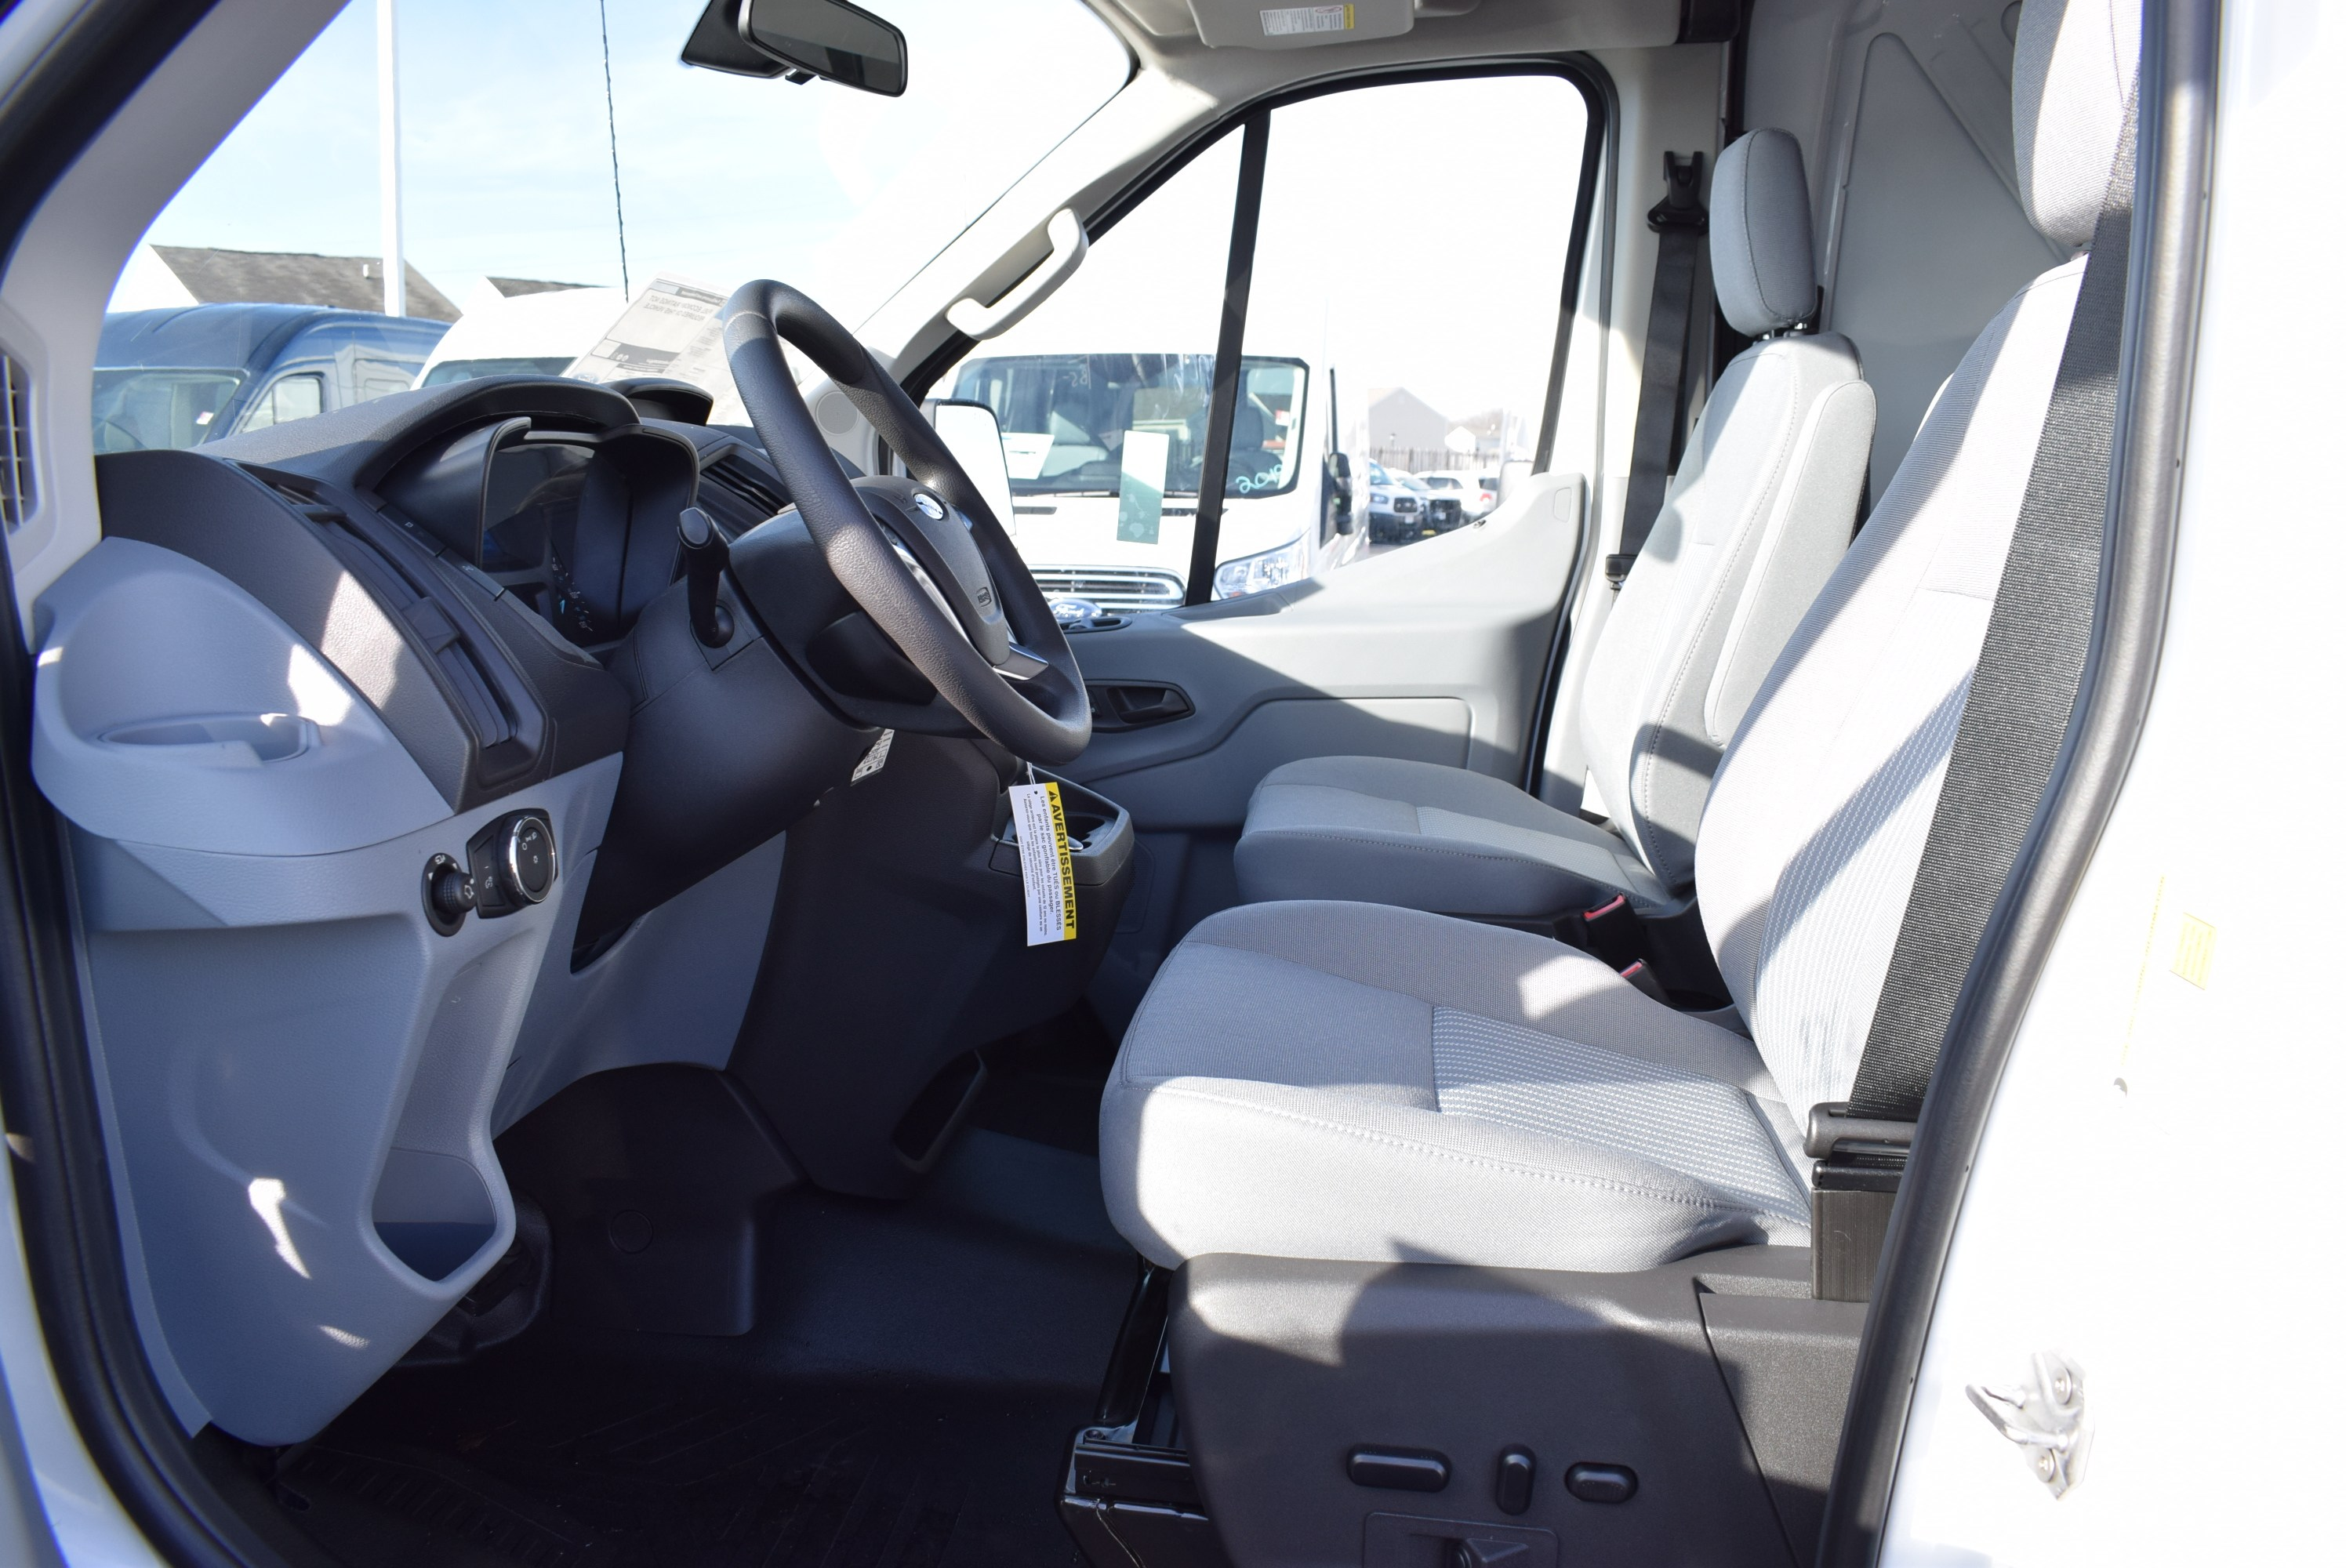 2019 Transit 150 Med Roof 4x2,  Empty Cargo Van #T19173 - photo 17